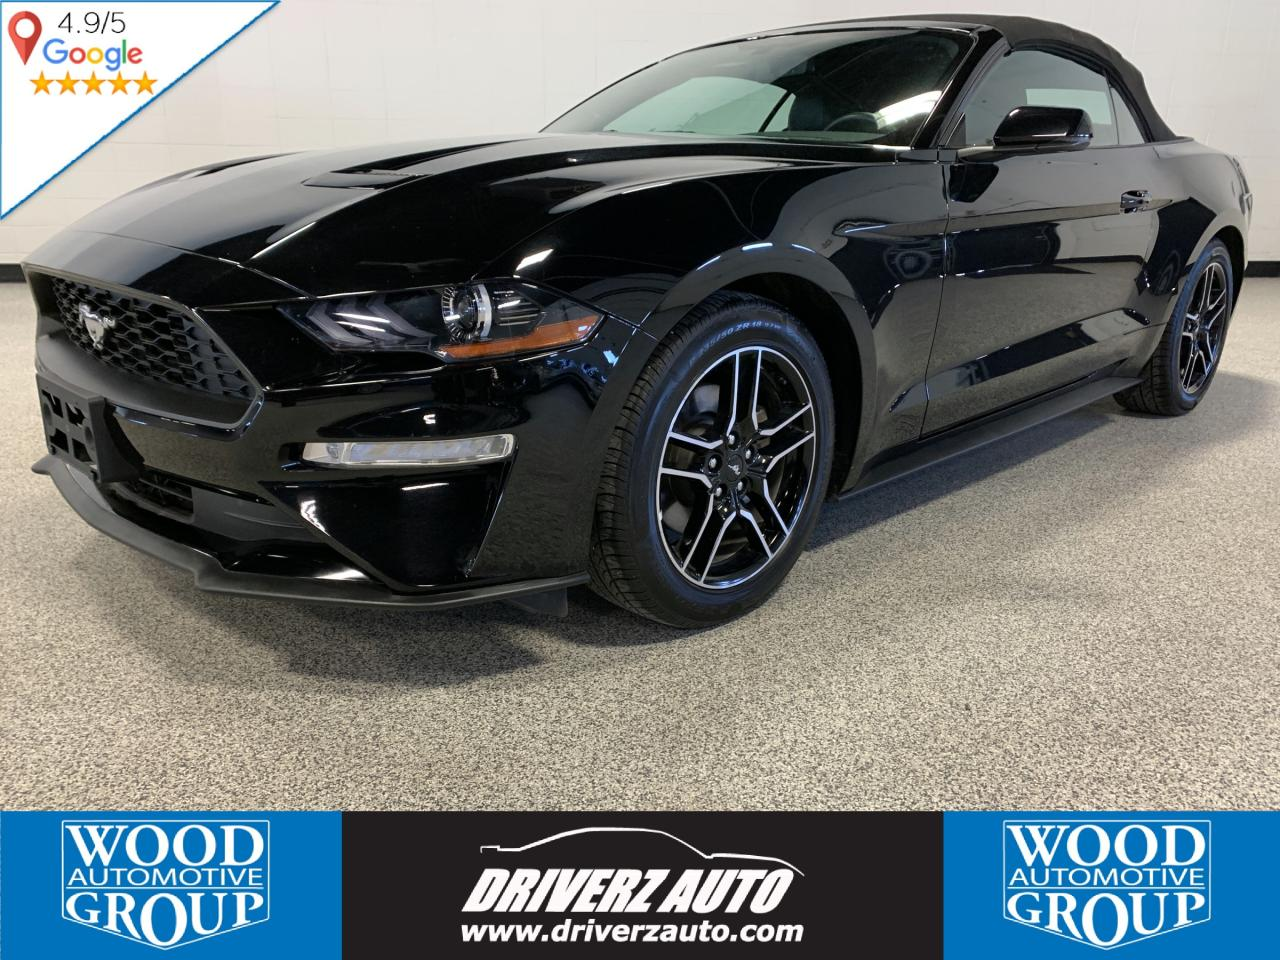 Used 2018 ford mustang ecoboost premium convertible leather heated cooled seats navigation for sale in calgary alberta carpages ca